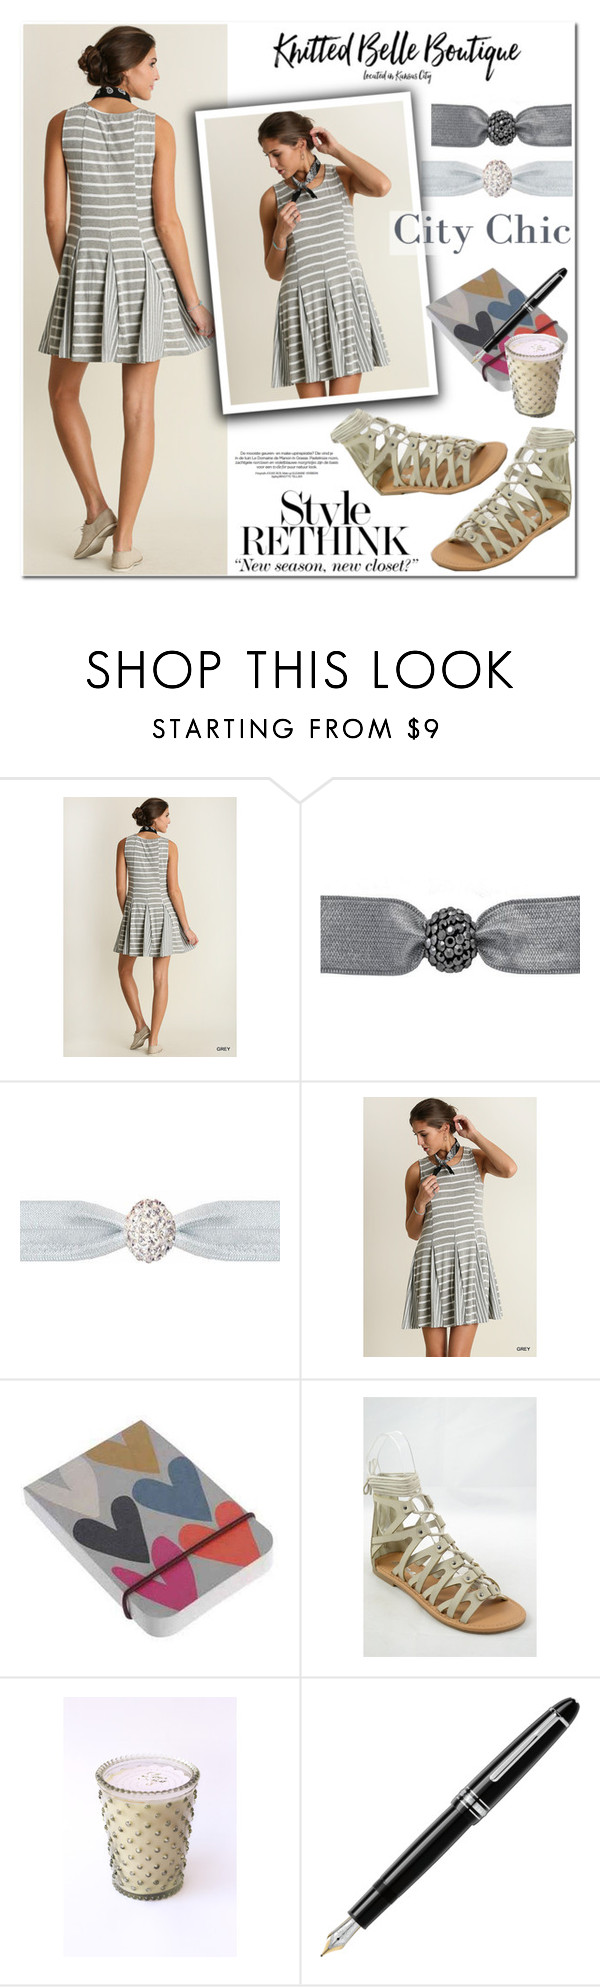 """""""Style rethink"""" by knittedbelleboutique ❤ liked on Polyvore featuring Emi-Jay, Caroline Gardner, Soda, K. Hall Designs (Simpatico) and Fountain"""